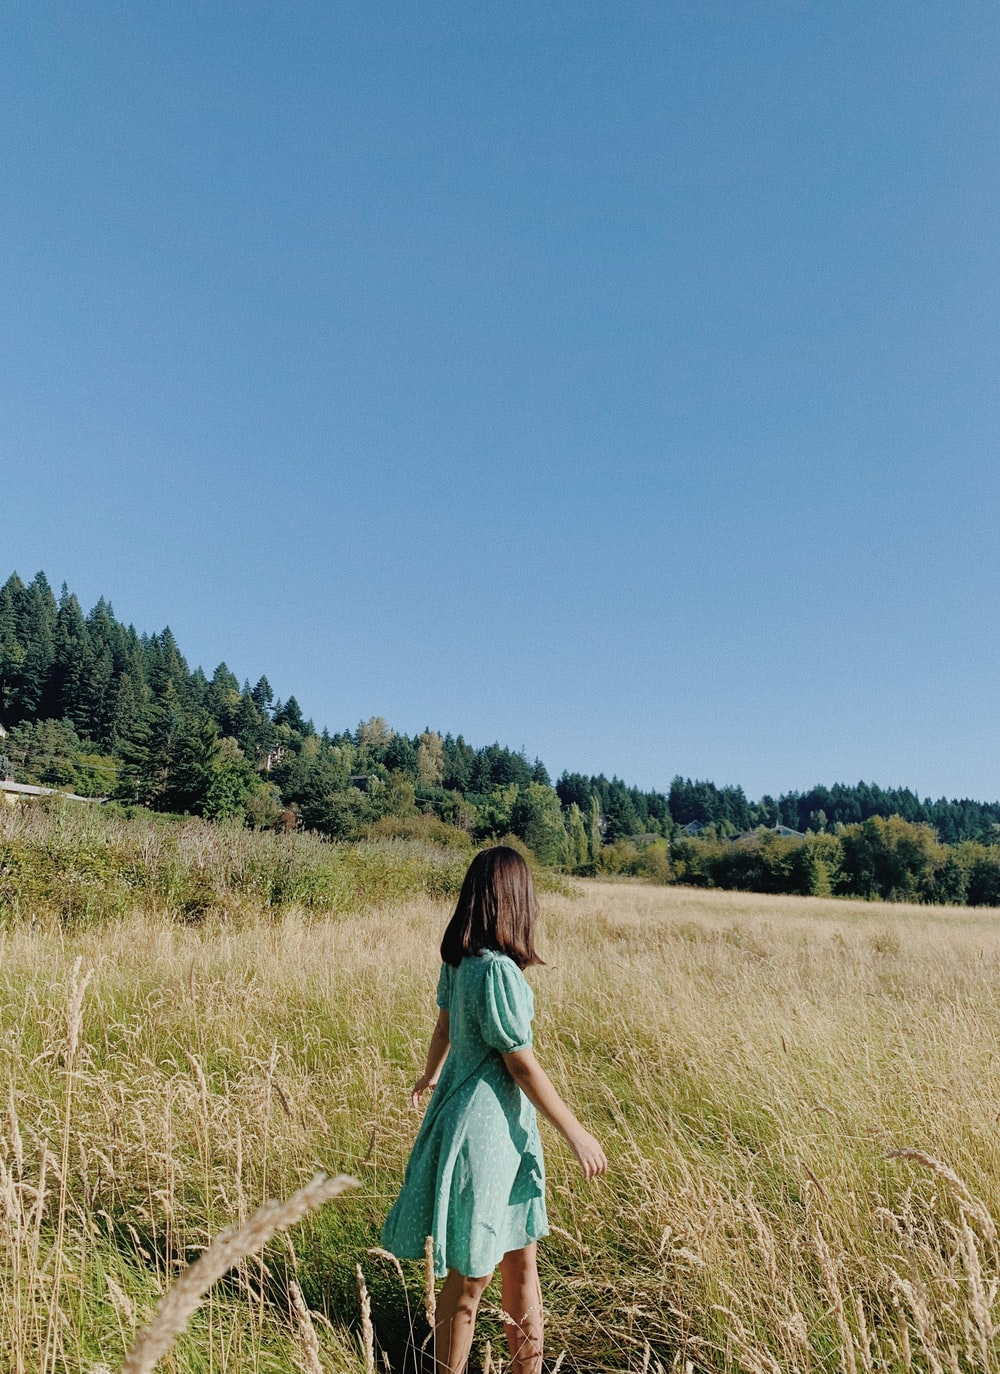 woman in green dress walking on brown grass field during daytime